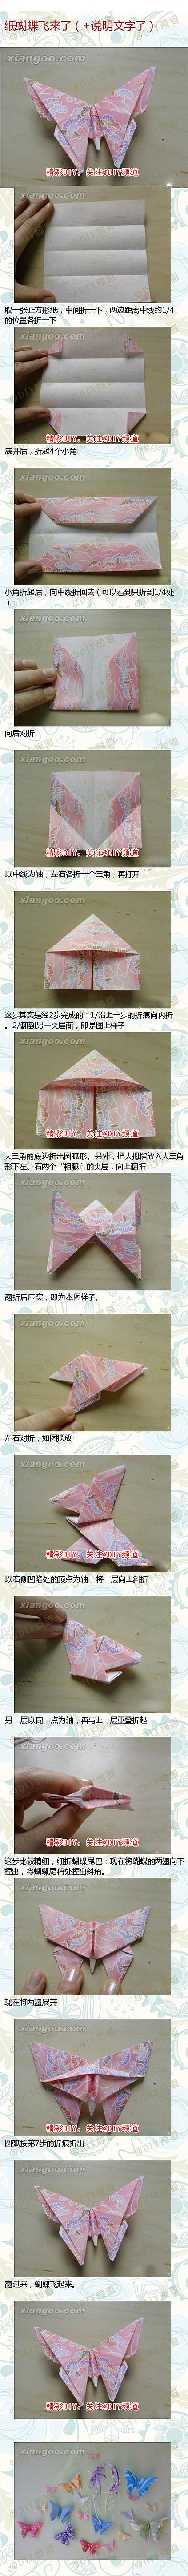 .Origami Butterfly